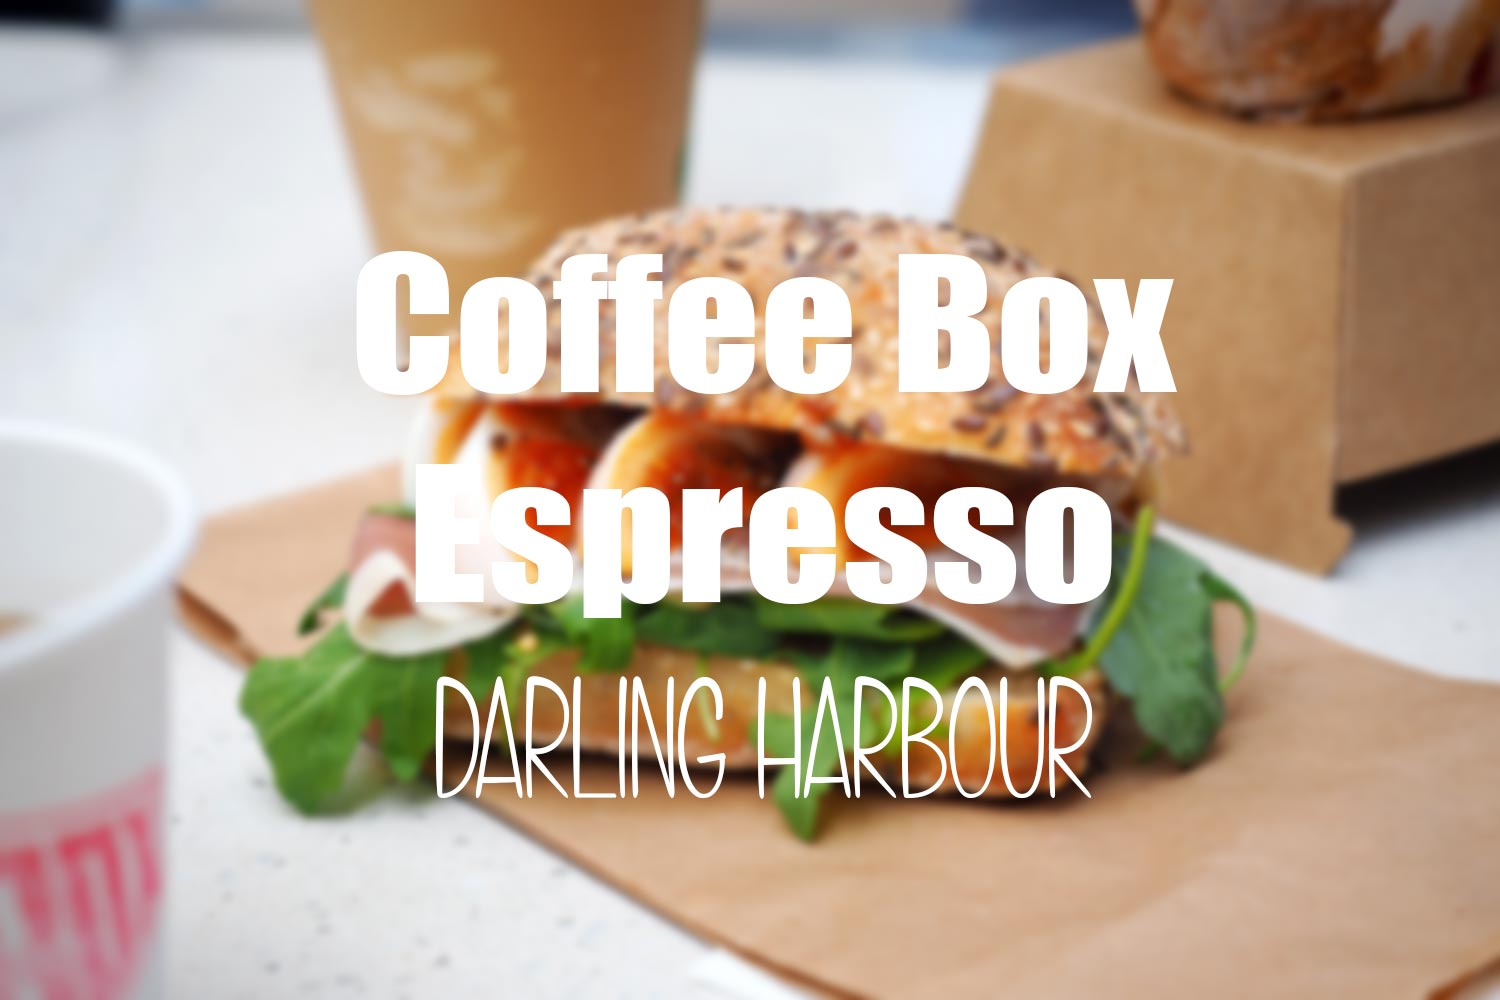 Coffee Box Espresso, Darling Harbour. Sydney Food Blog Review